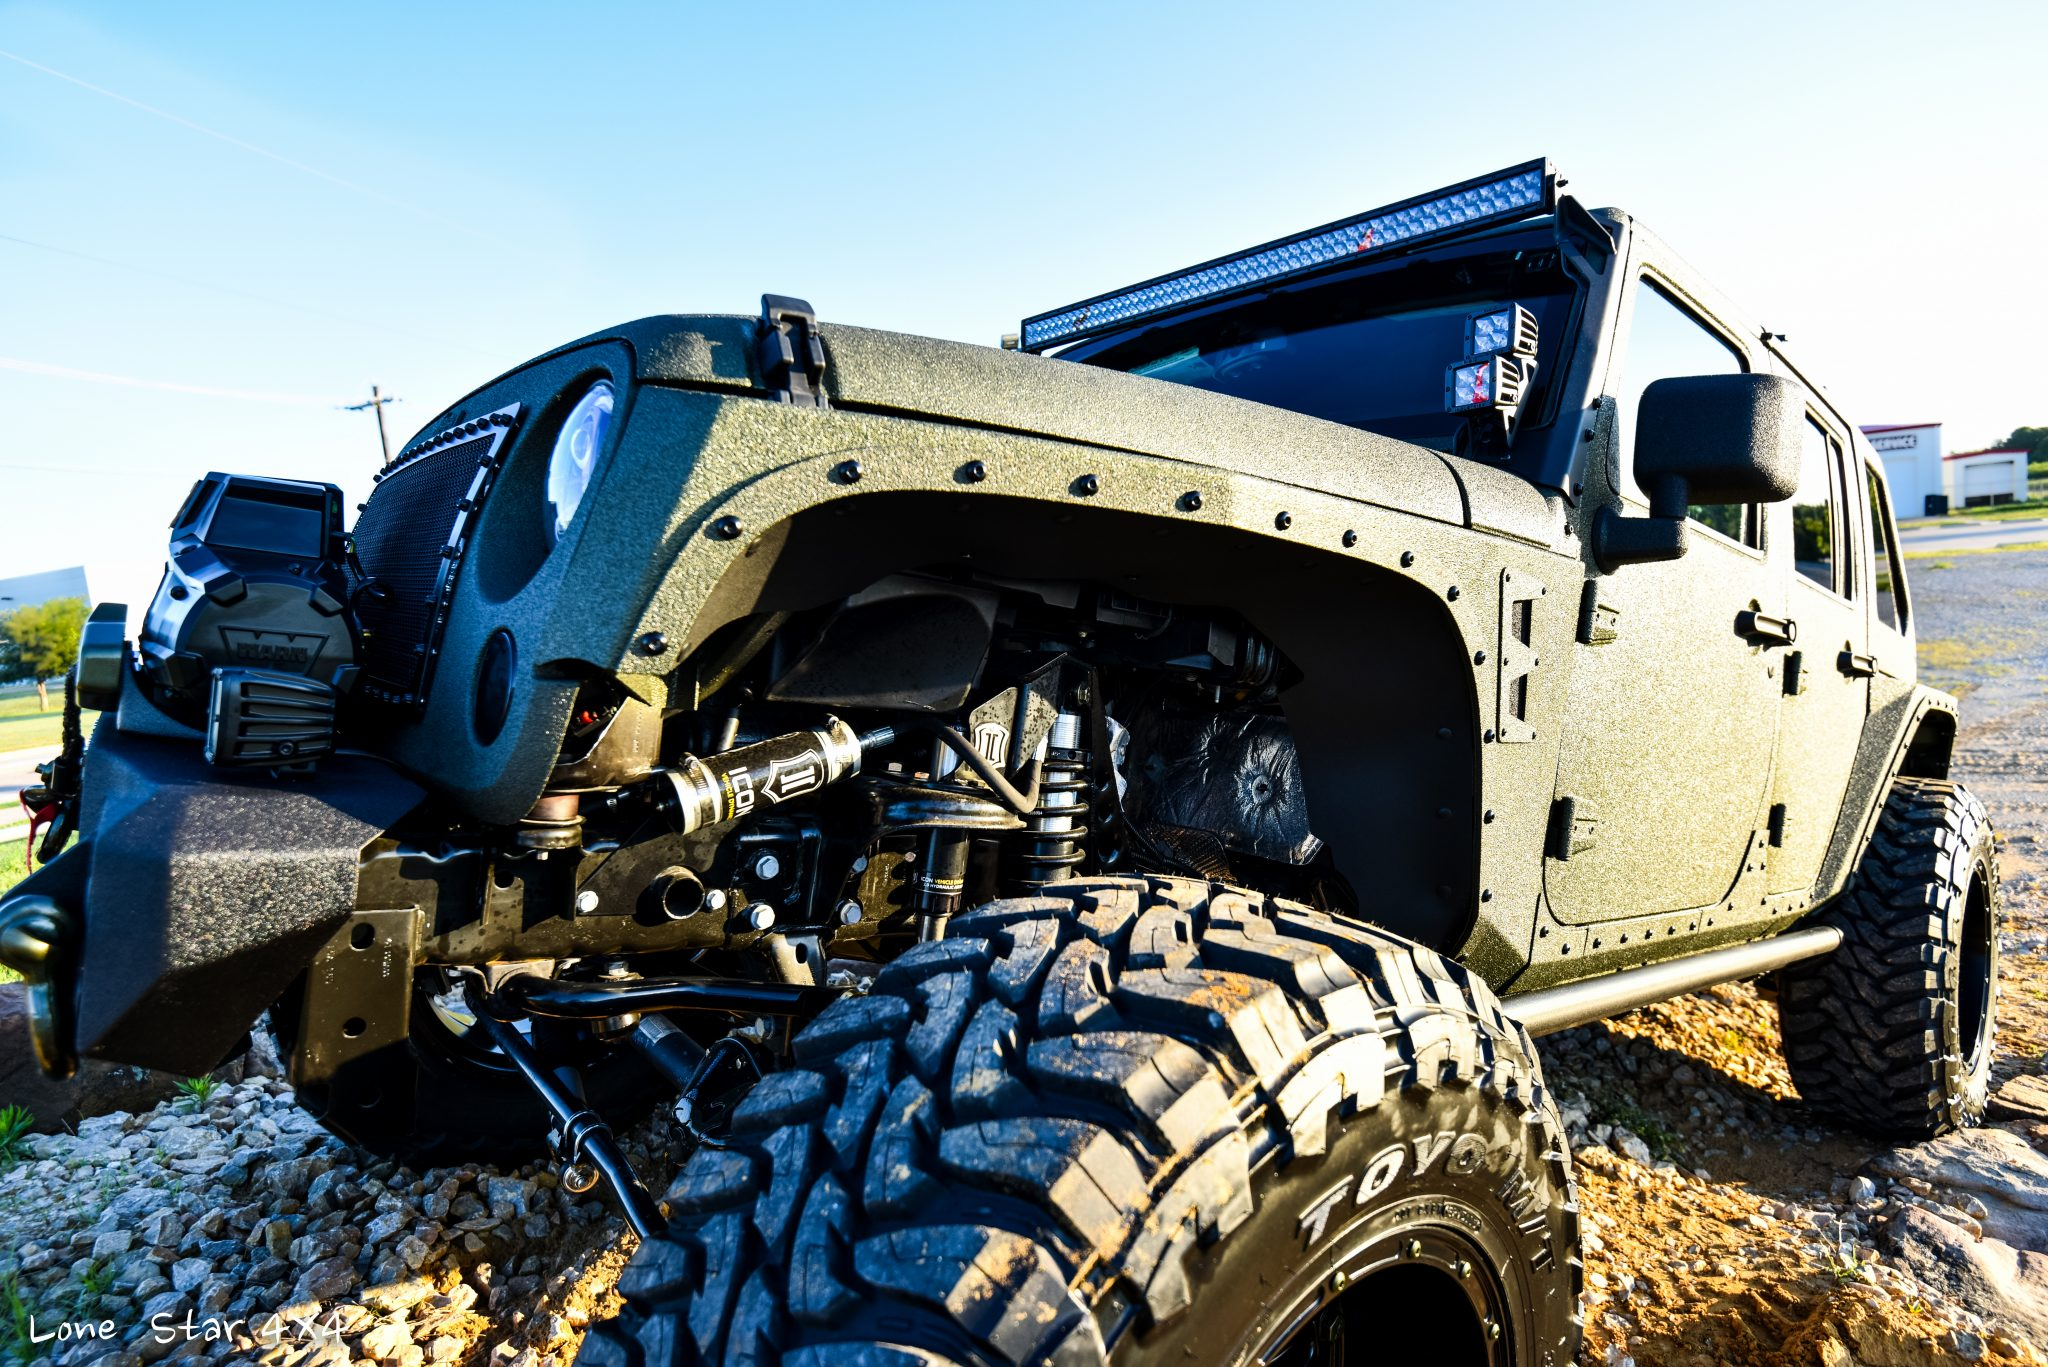 Tricked Out Jeeps Denton TX Lone Star 4x4